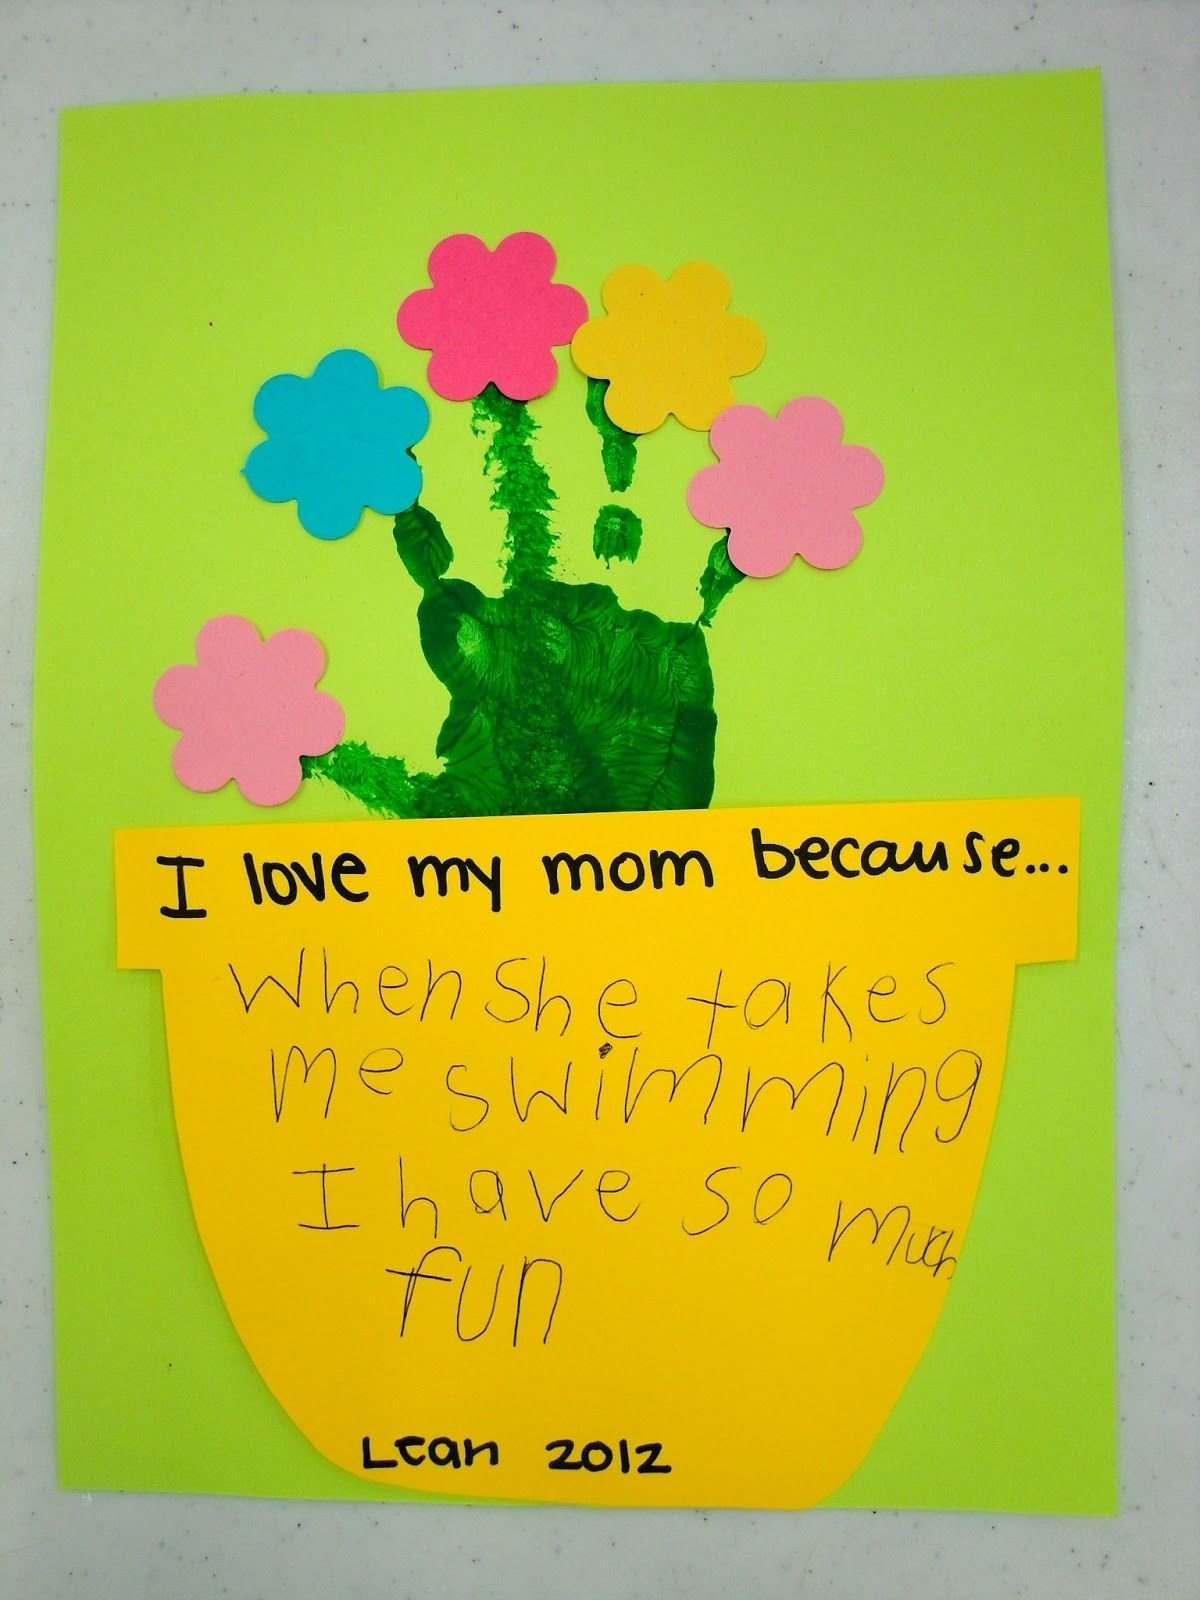 10 Fabulous Craft Ideas For Mothers Day mothers day crafts kindergarten ideas pinterest craft school 4 2020